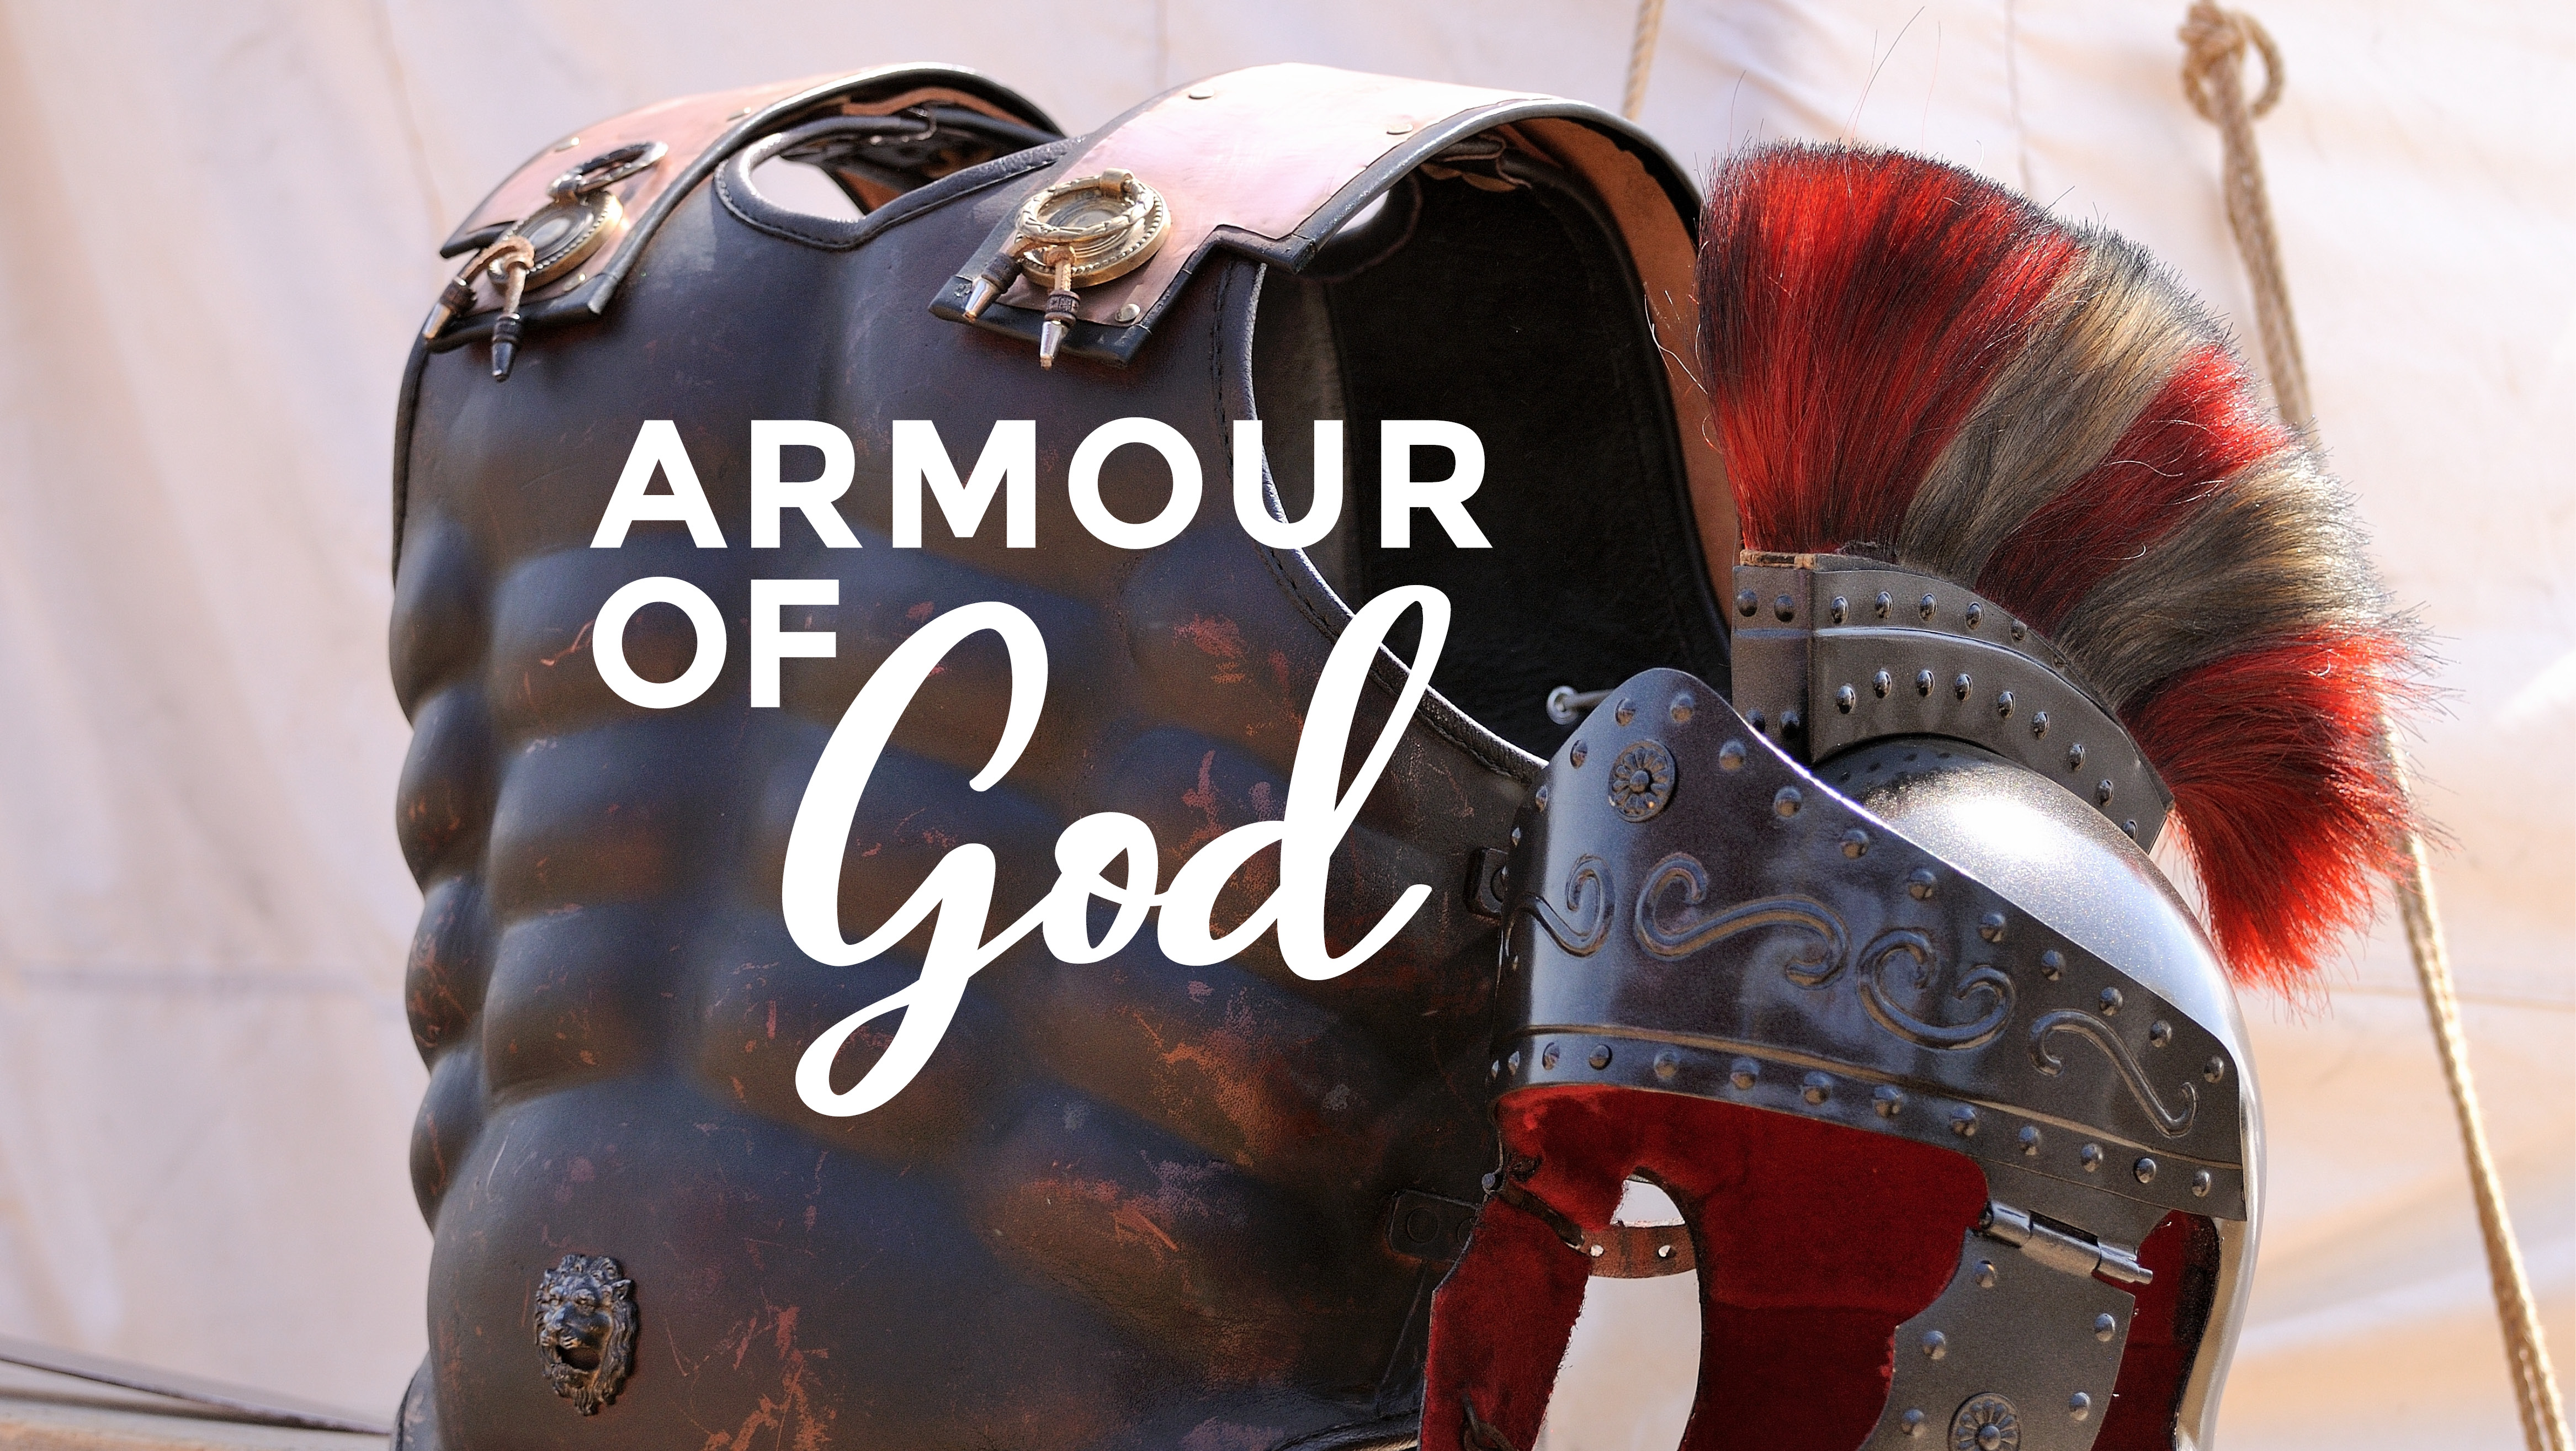 Part 3 : Shield of Faith & Helmet of Salvation